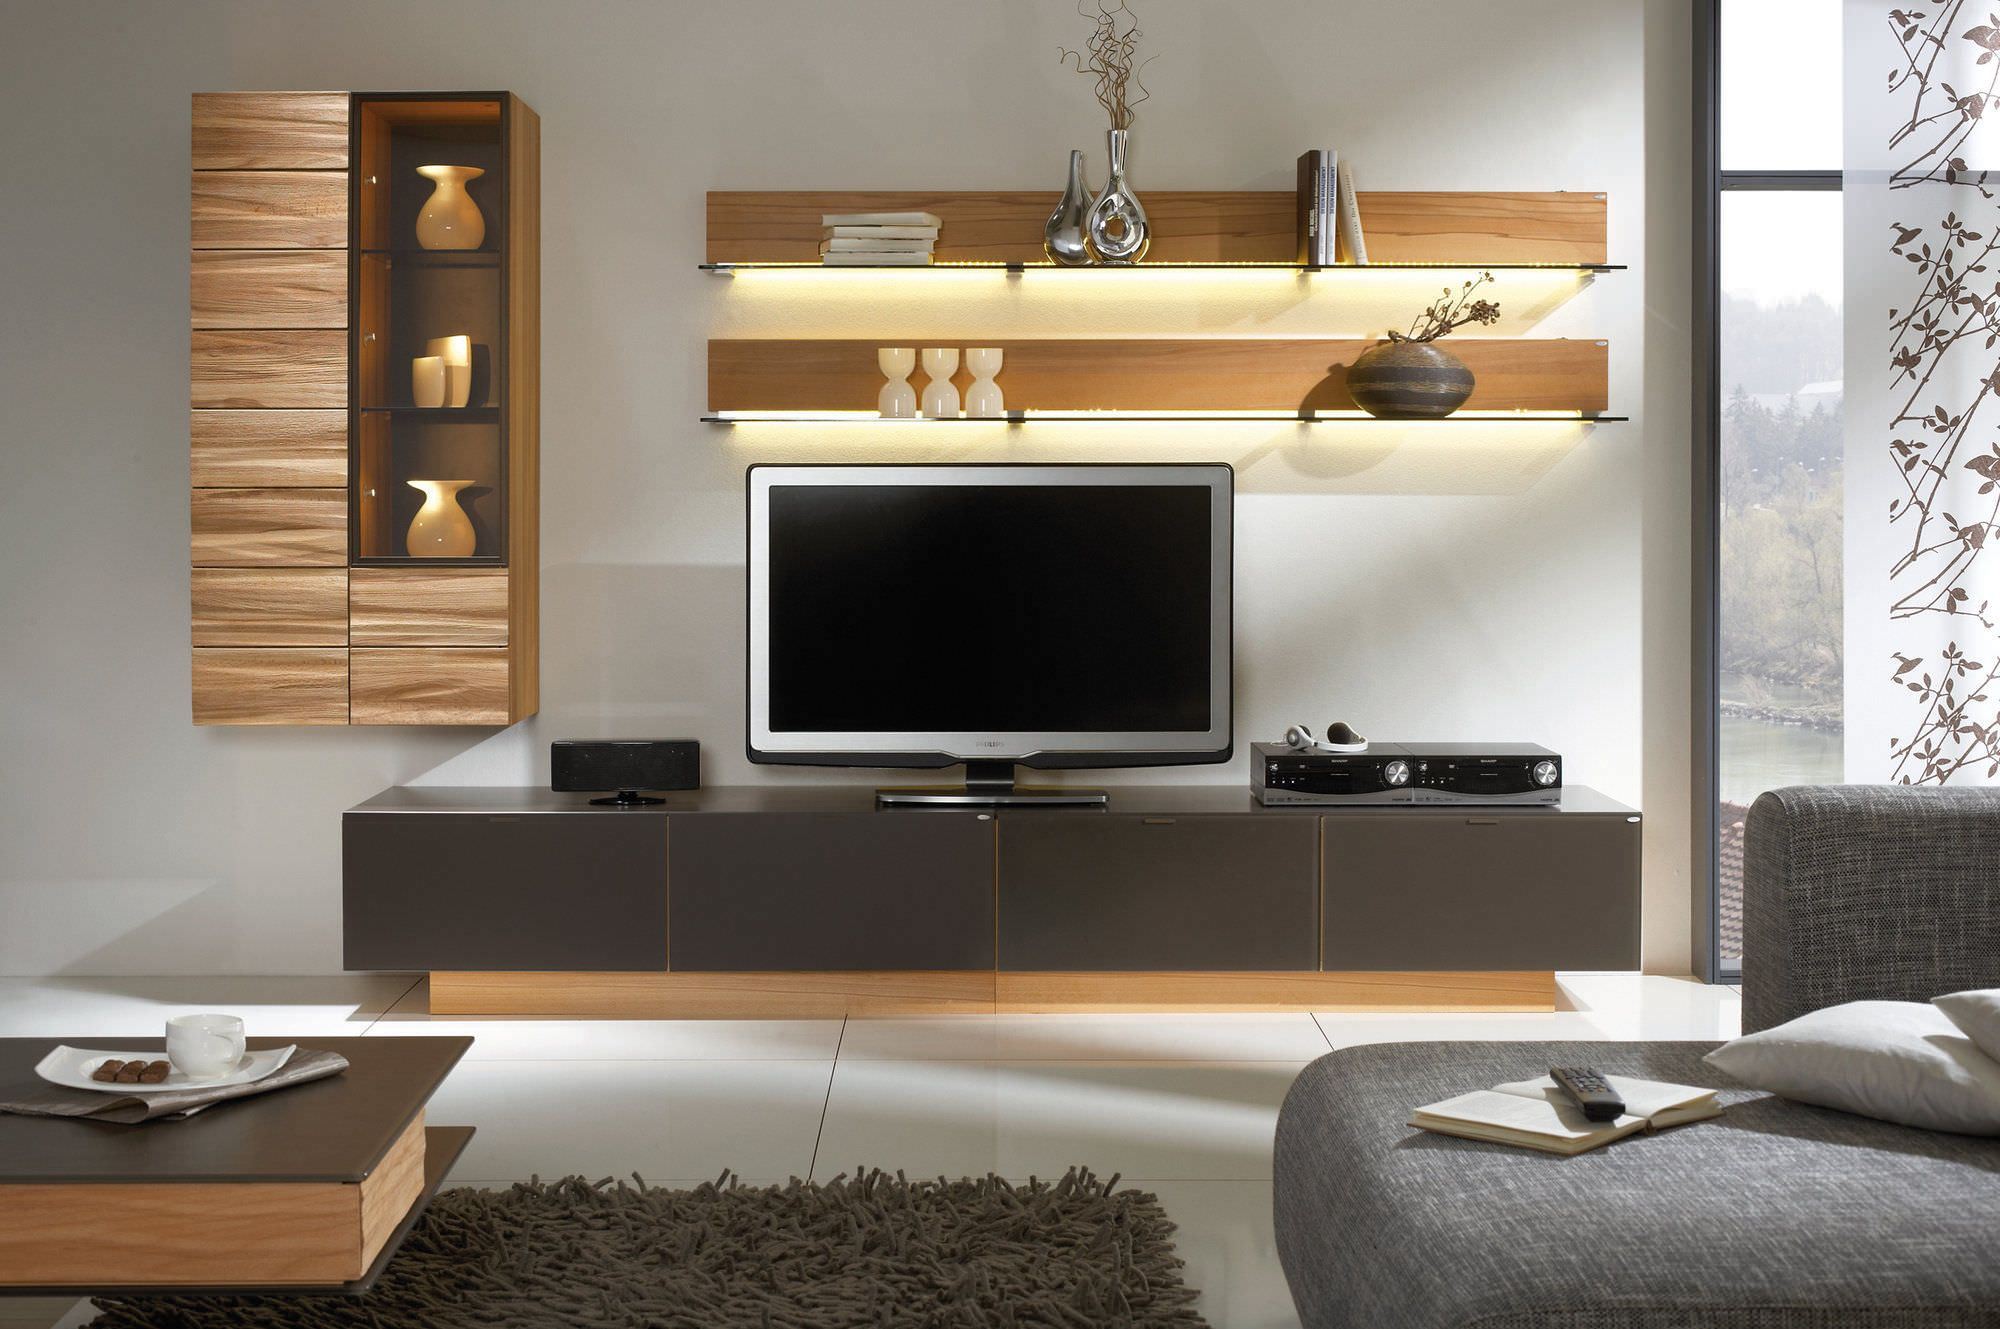 Awesome White Brown Wood Glass Cool Design Contemporary Tv: modern tv unit design ideas